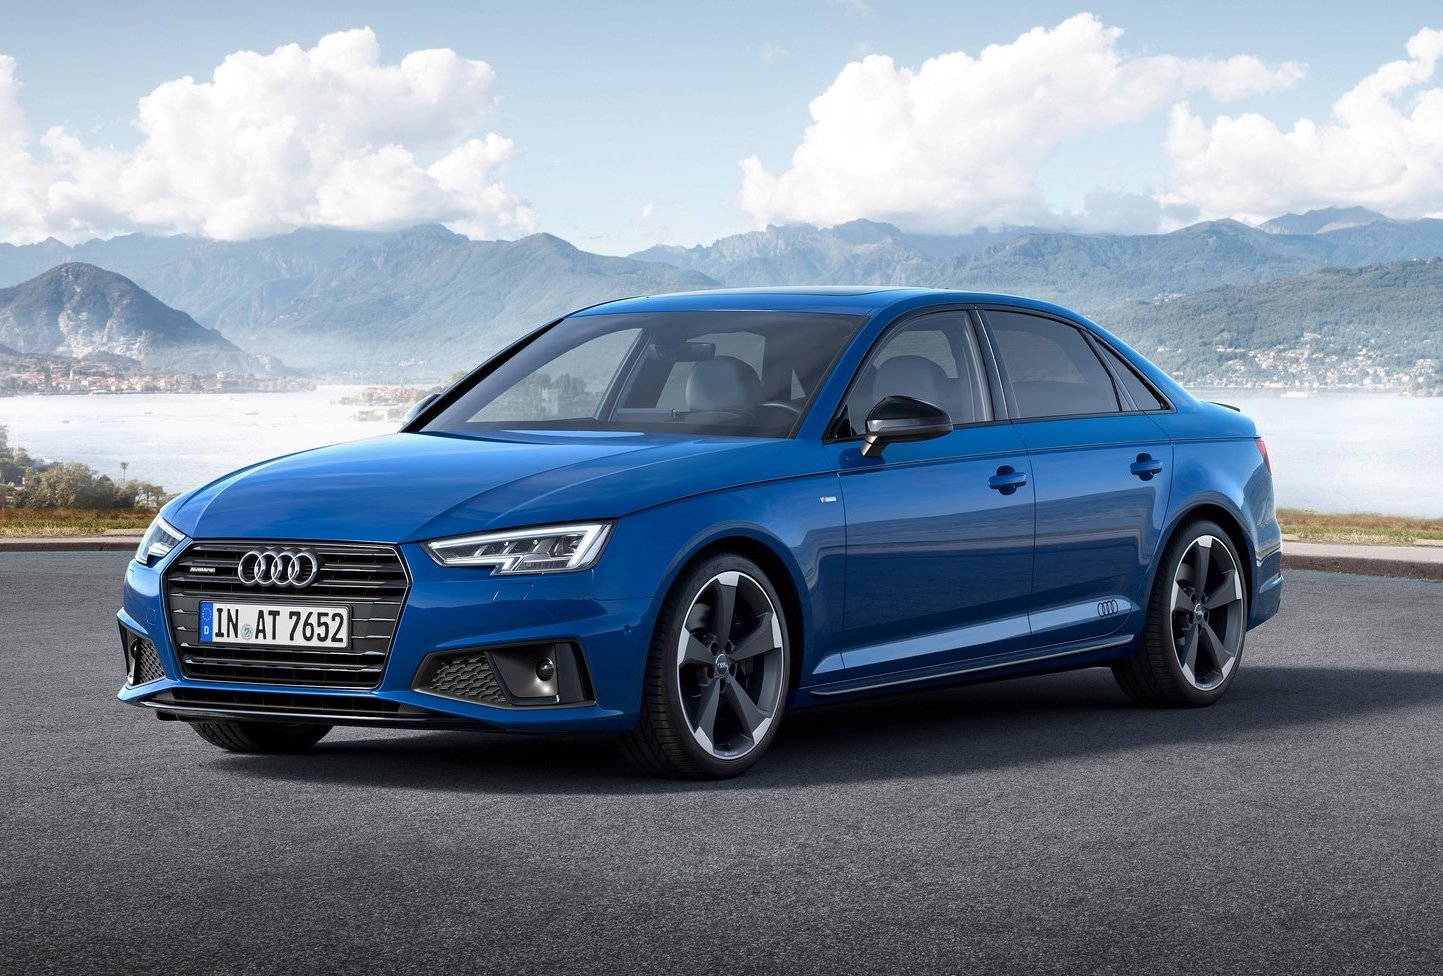 2019 audi a4 facelift debuts adds s line competition trim. Black Bedroom Furniture Sets. Home Design Ideas